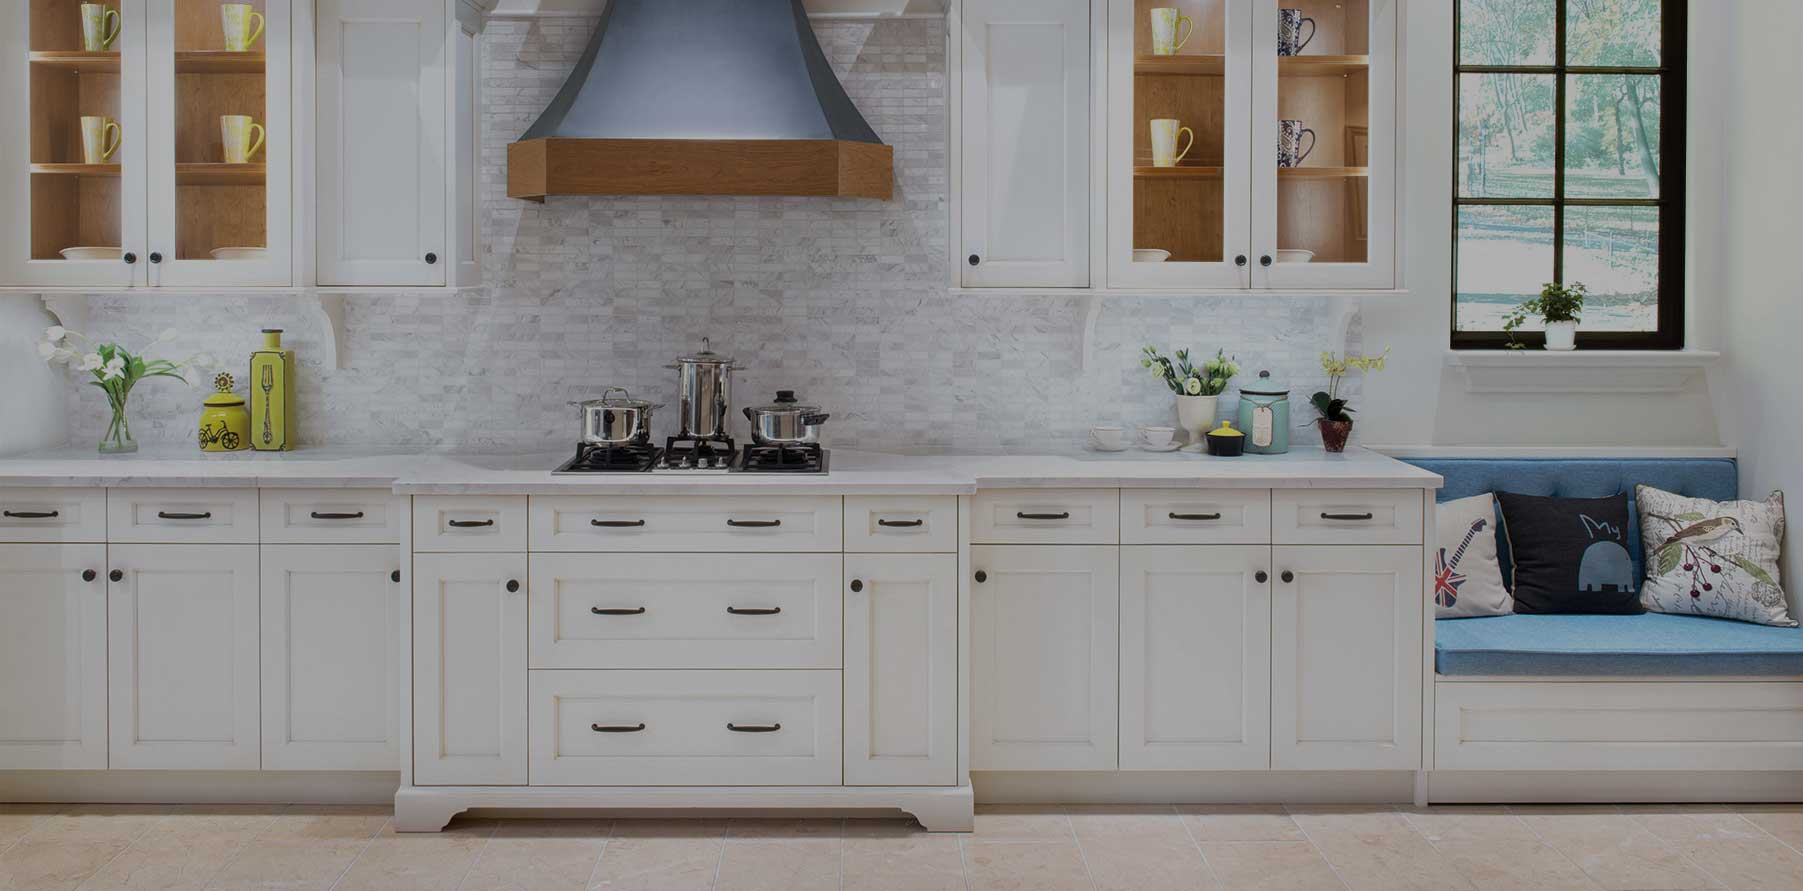 KITCHEN-AND-BATHROOM-CABINETS